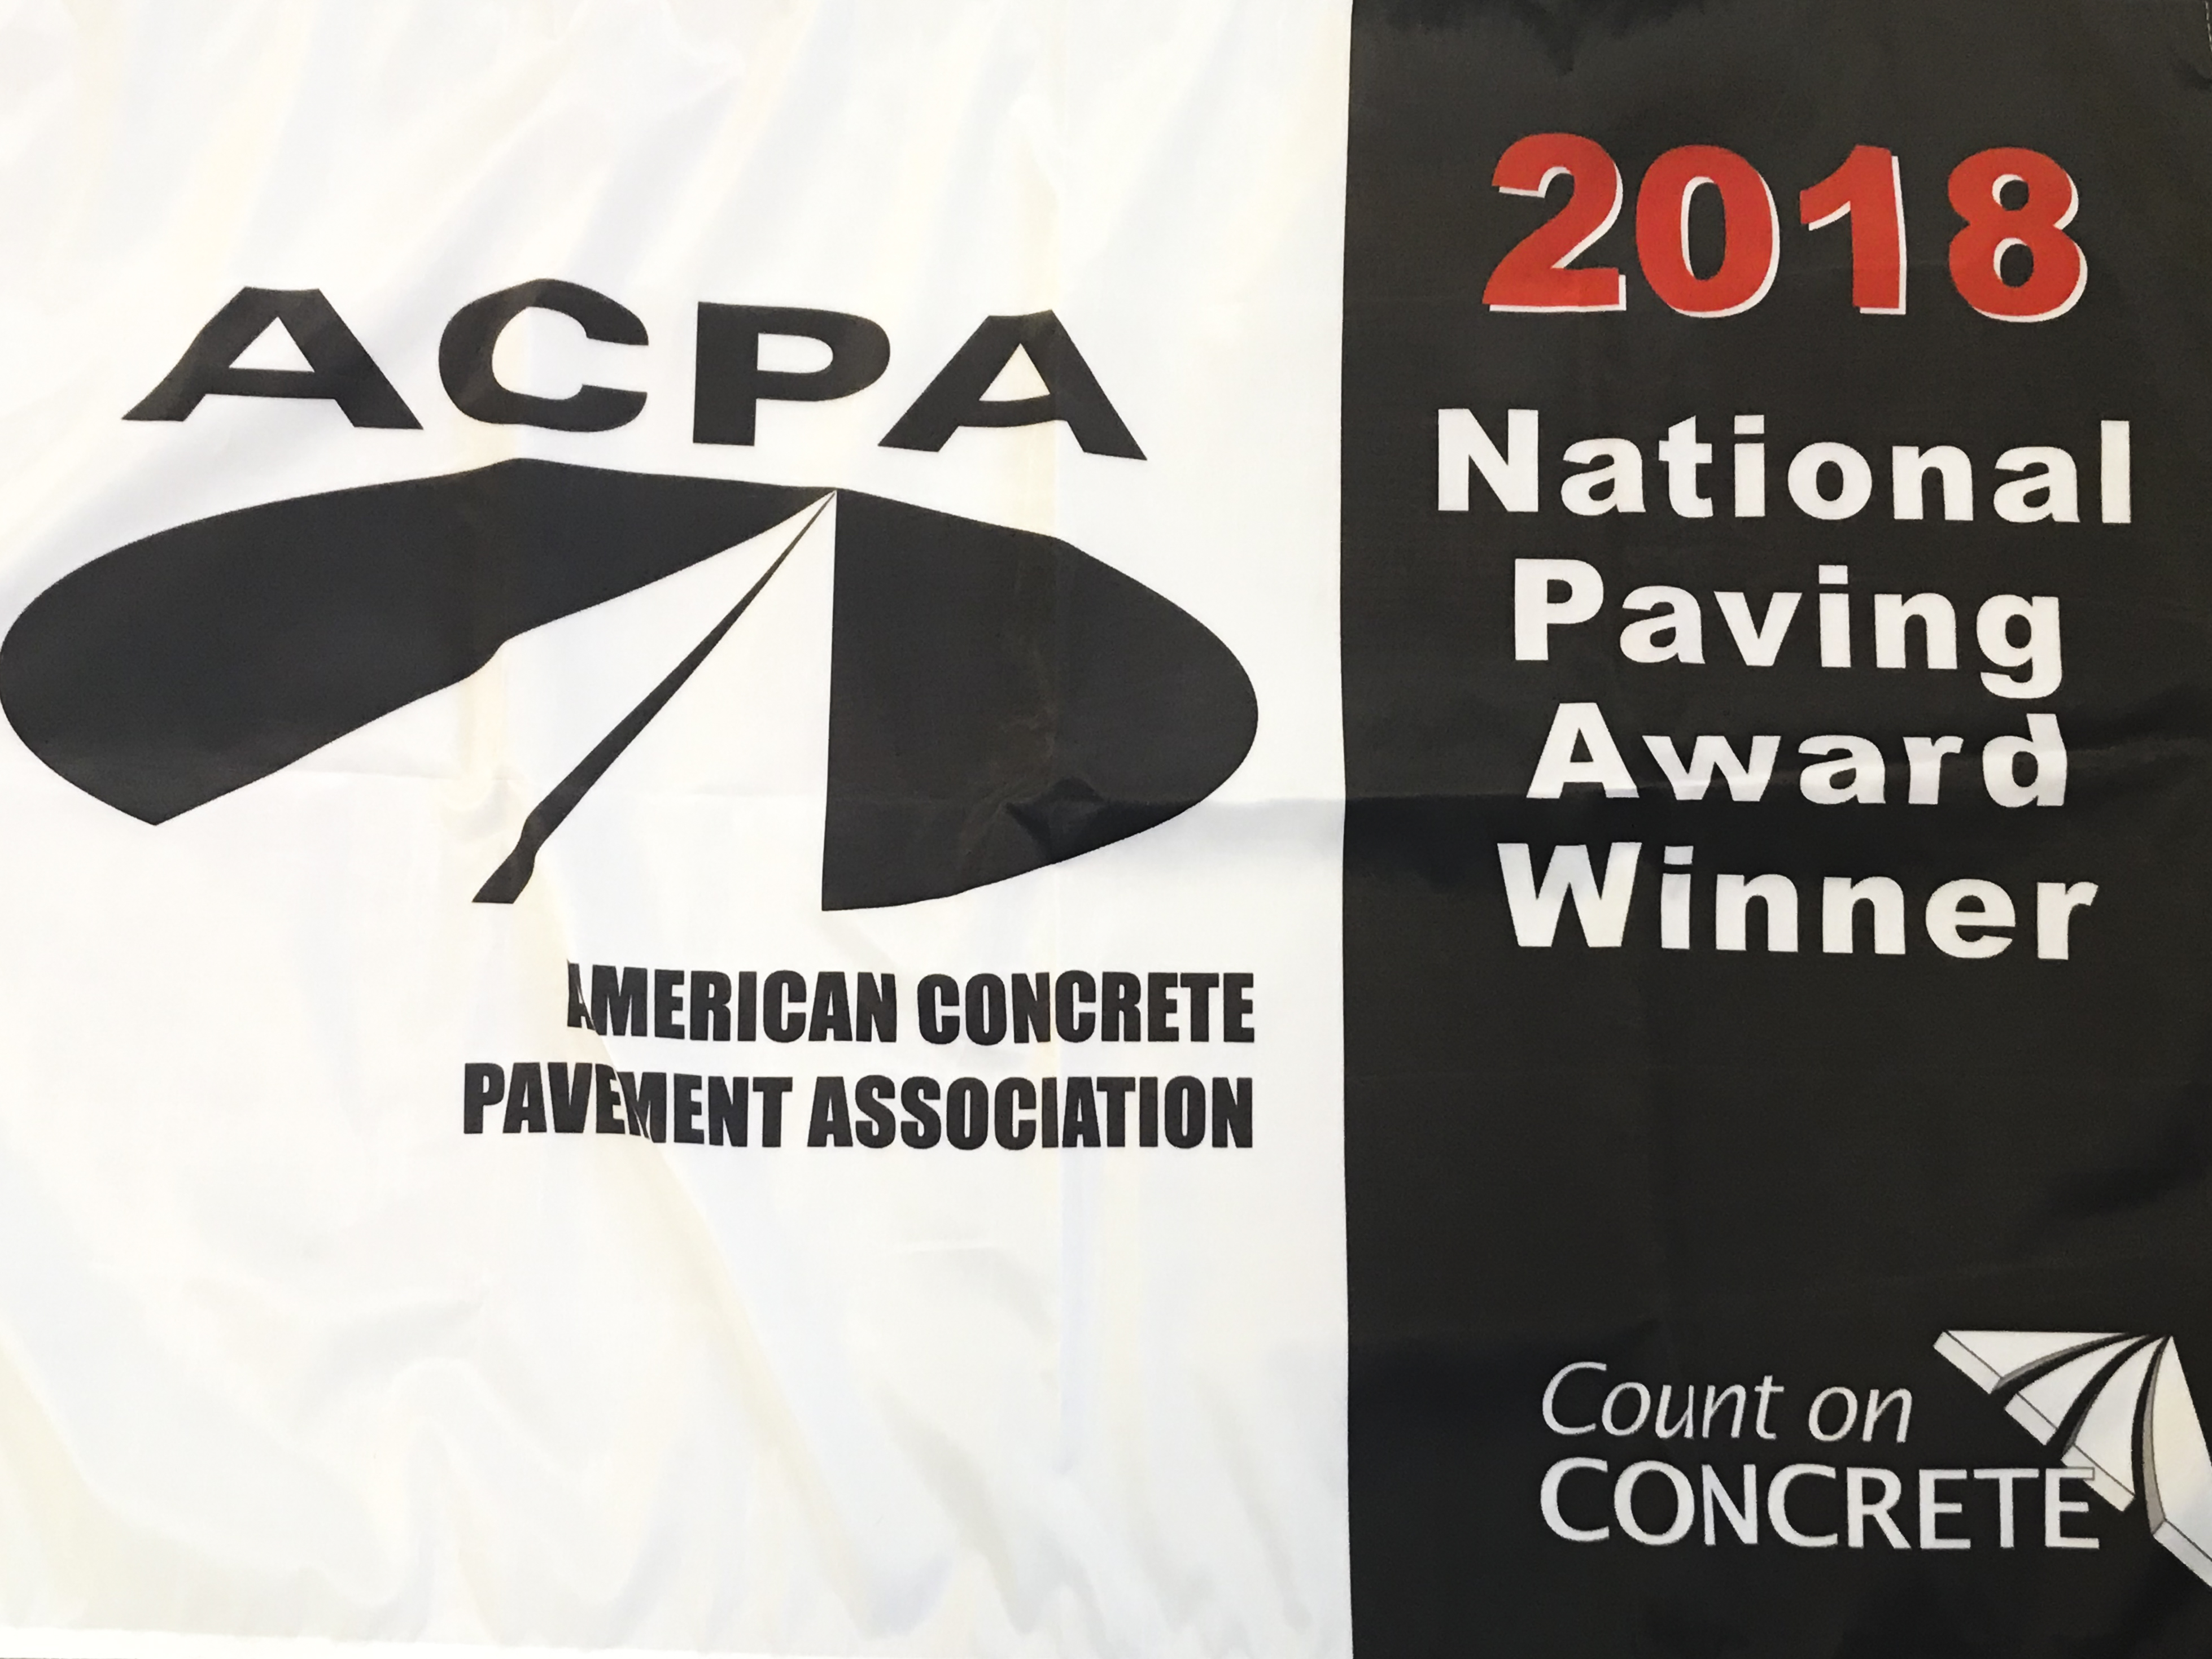 ACPA Flag for 2018 National Paving Award